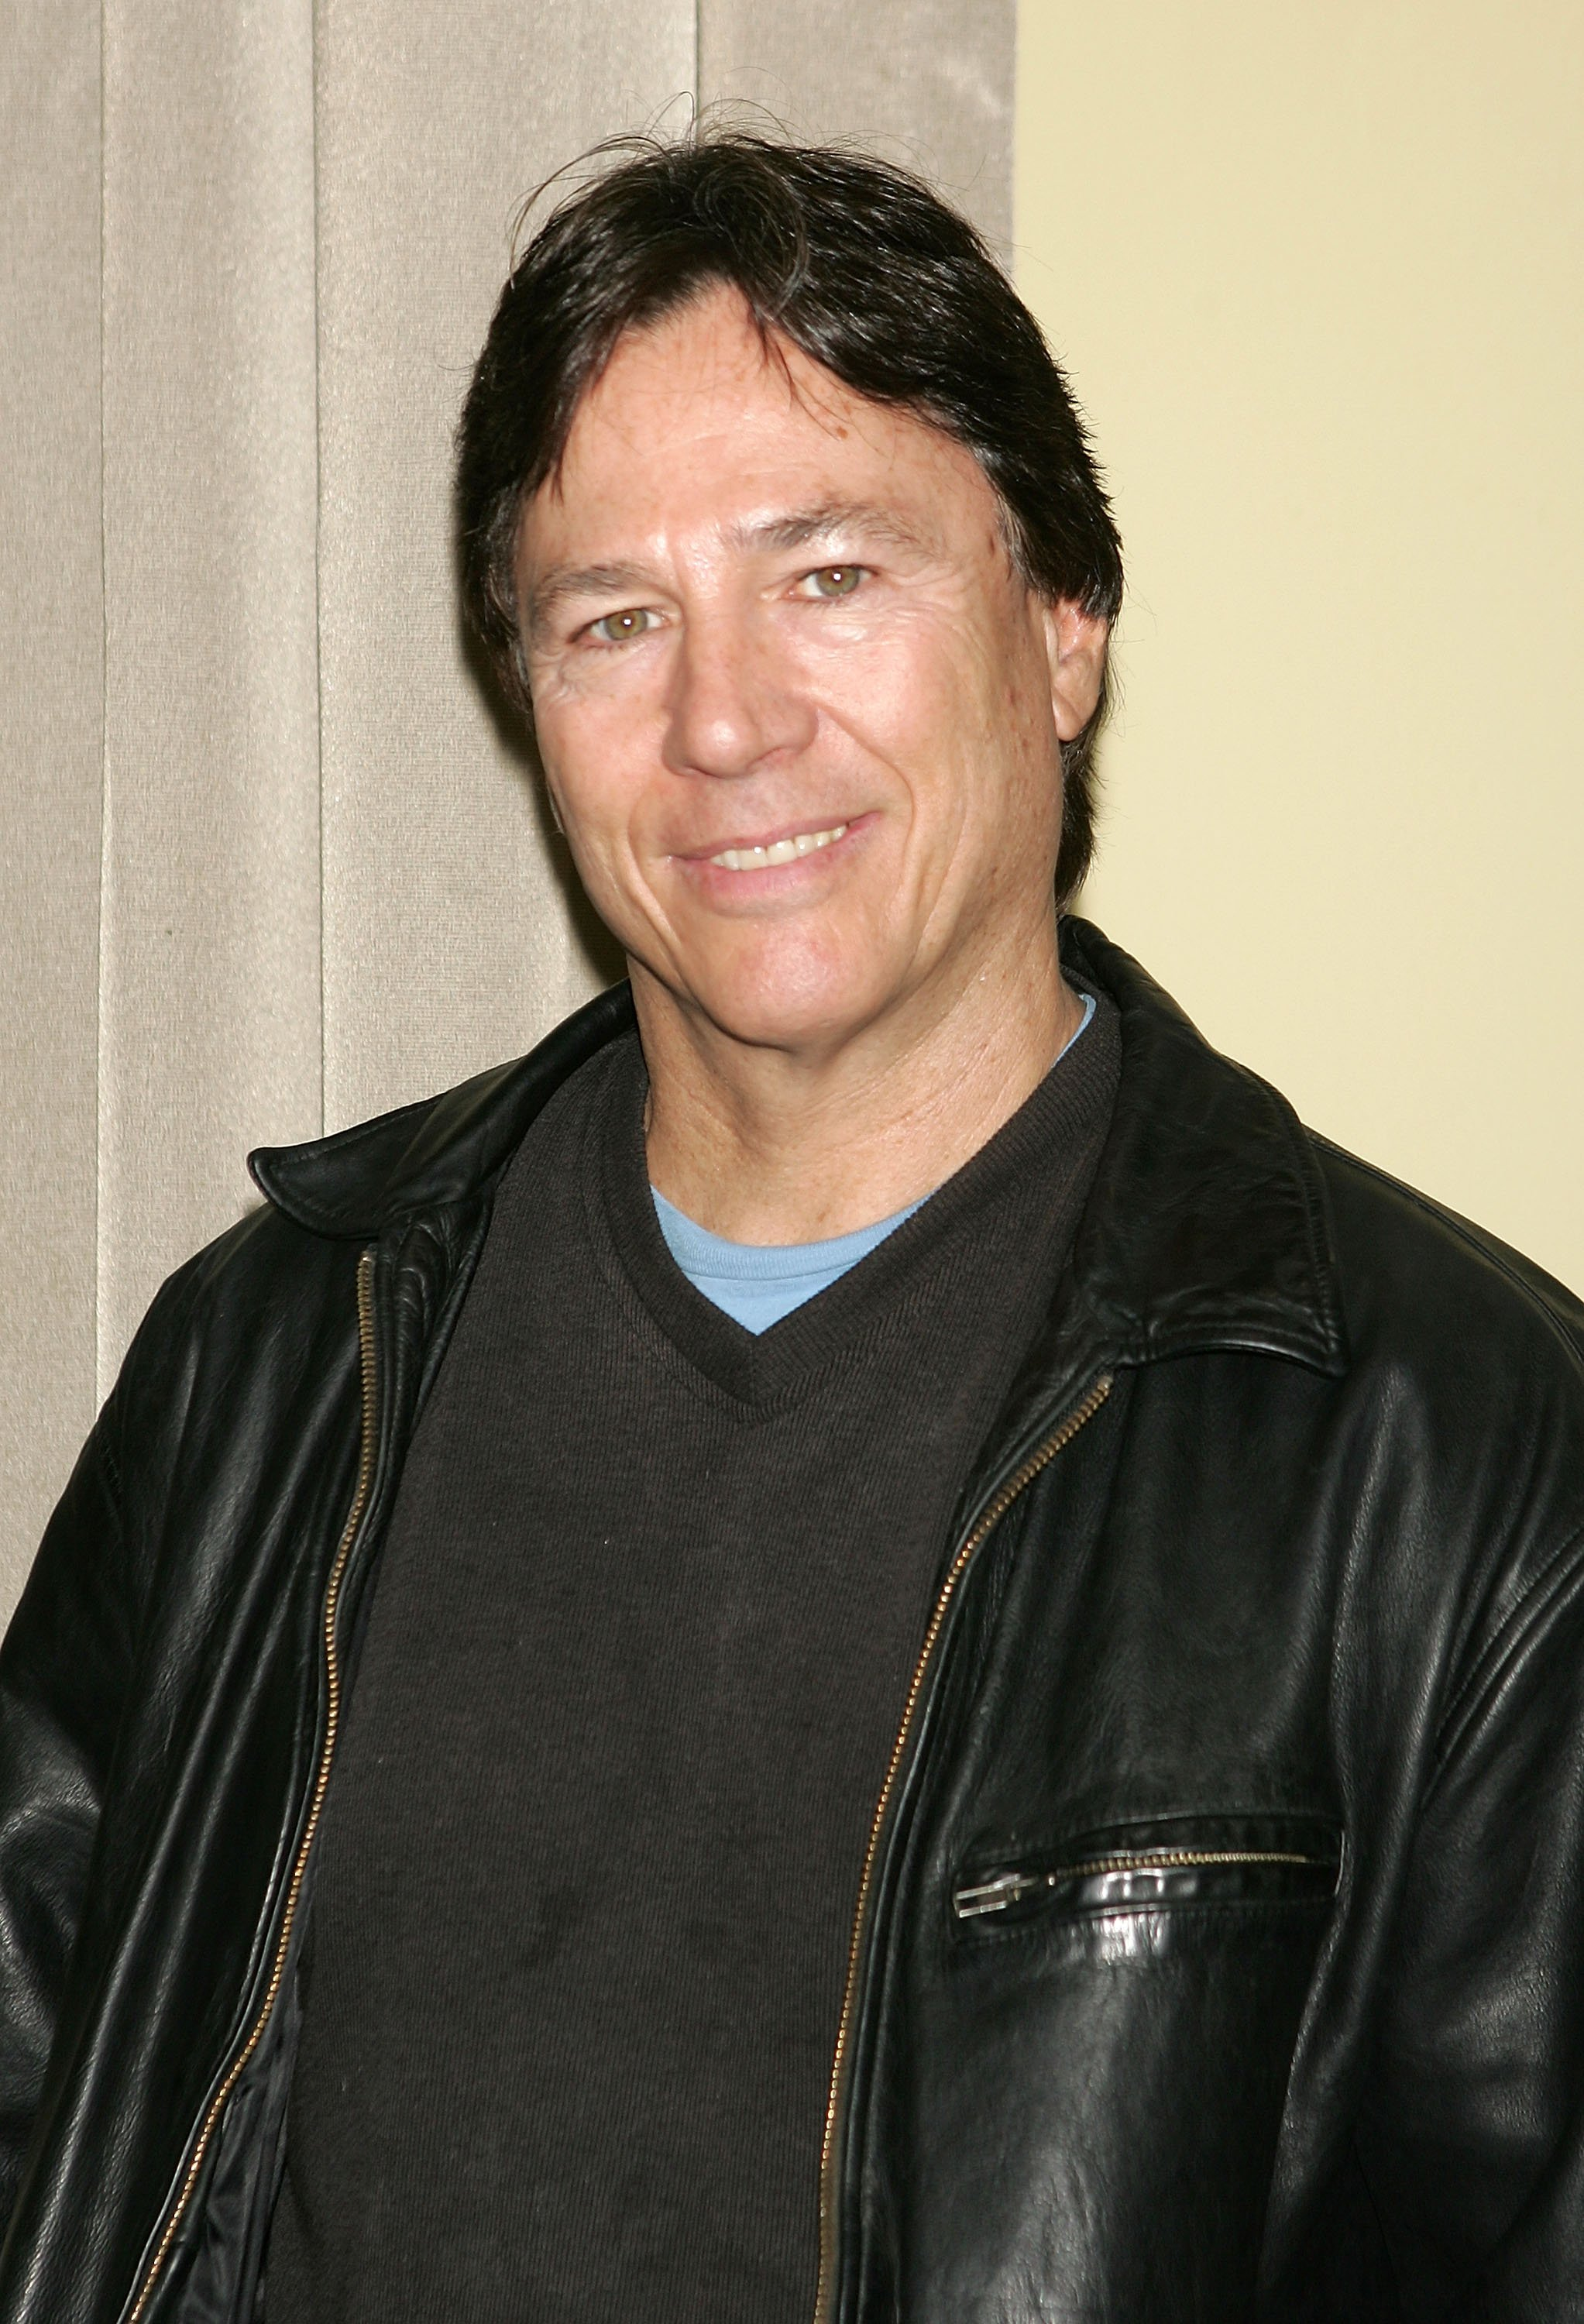 Richard Hatch poses for a photo at the 10th Annual Big Apple National Comic Book, Toy & Sci-Fi Expo at Penn Plaza Pavillion November 18, 2005 in New York City